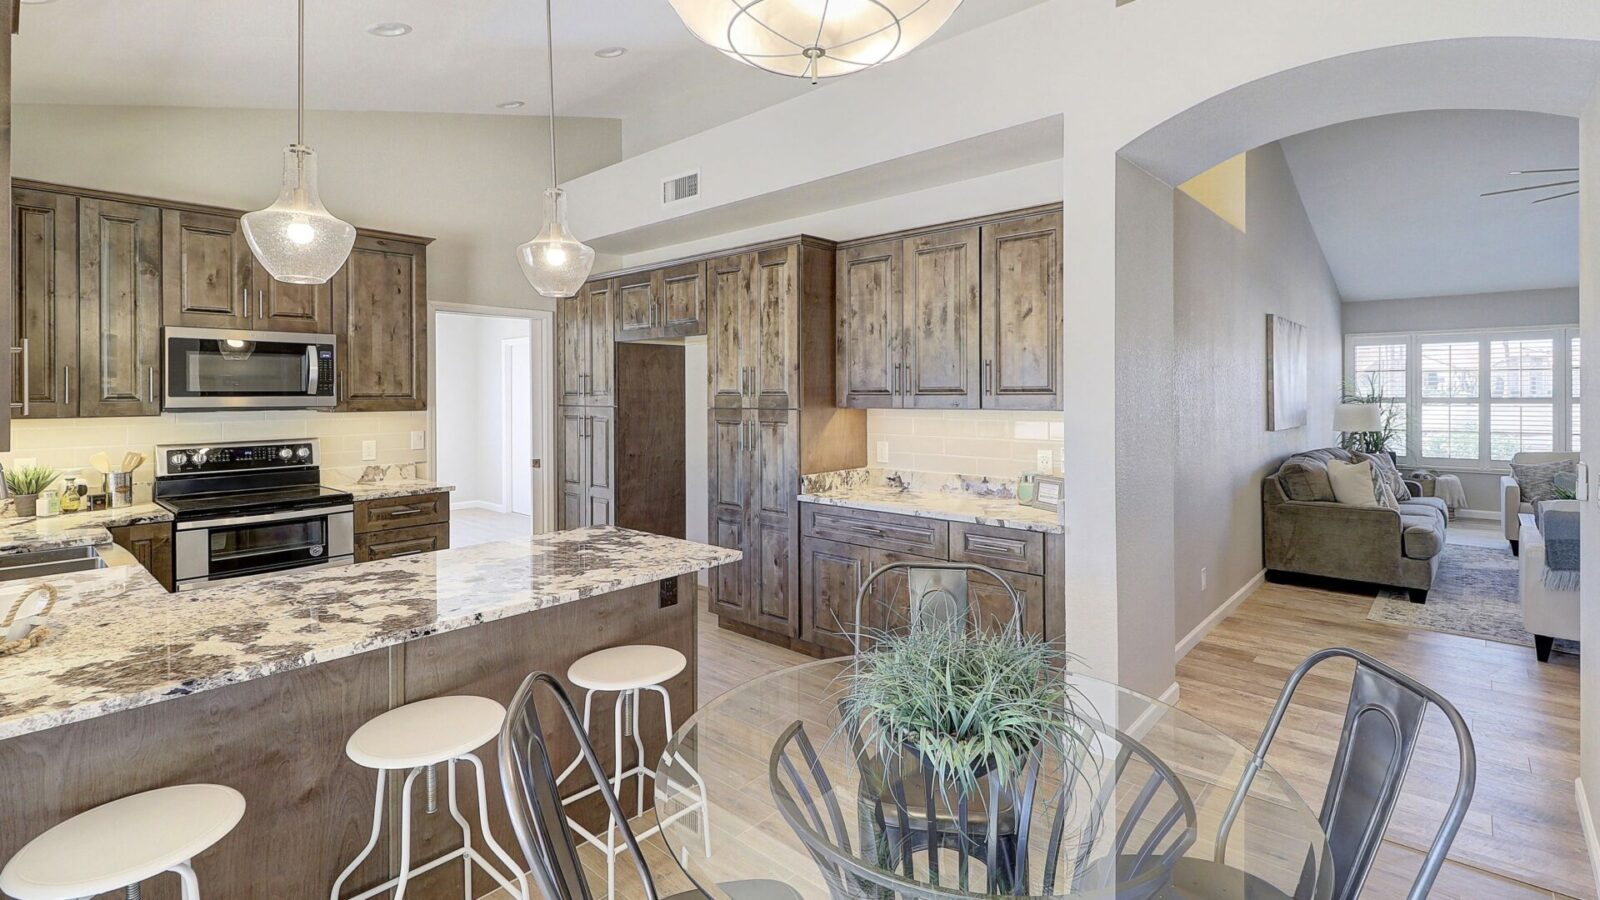 A rustic stained kitchen